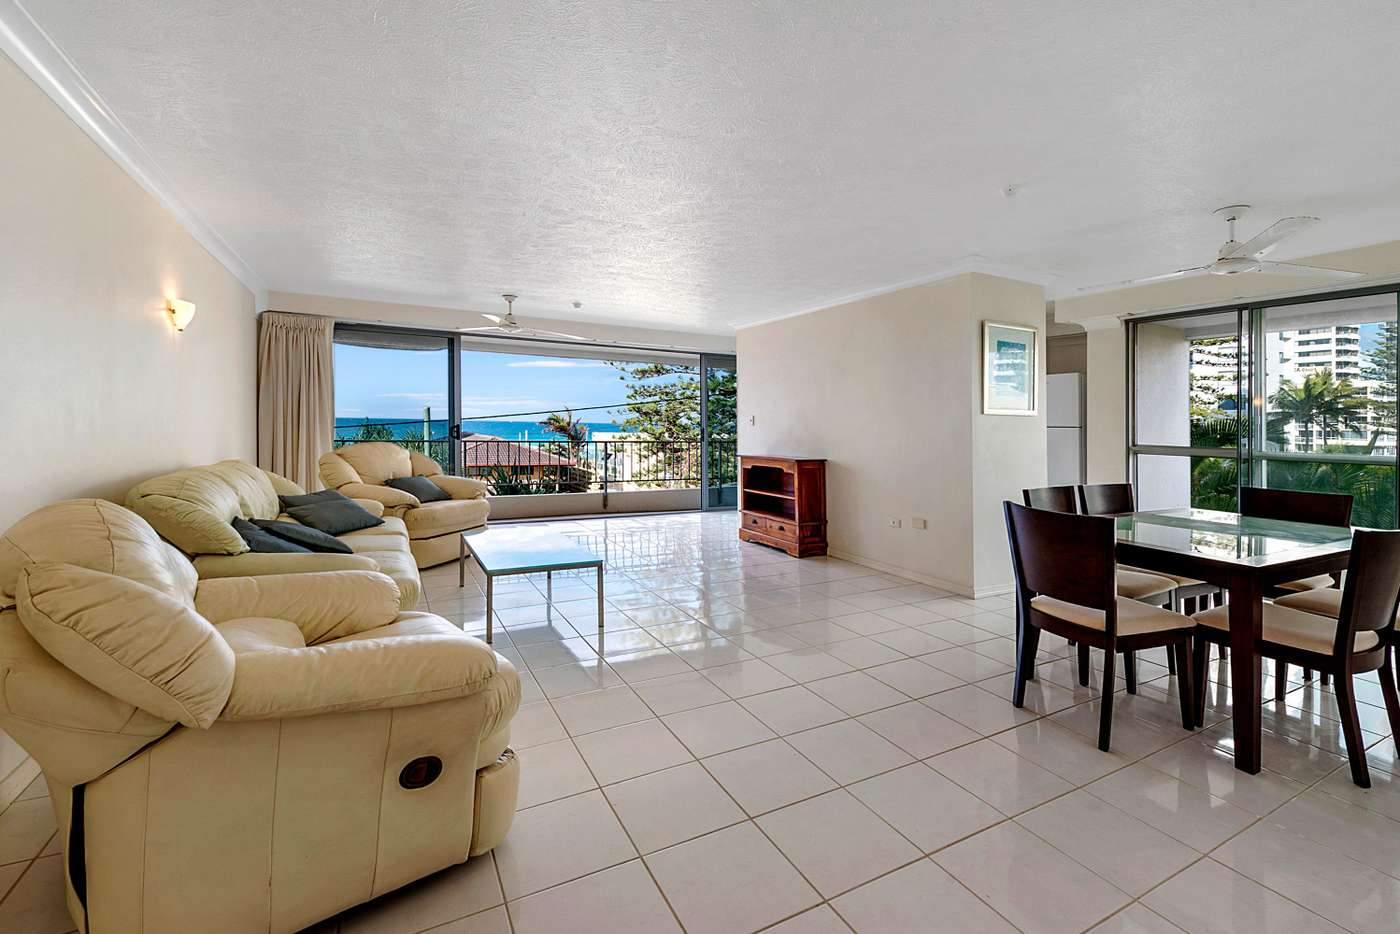 Main view of Homely apartment listing, 6 Aubrey Street, Surfers Paradise, QLD 4217